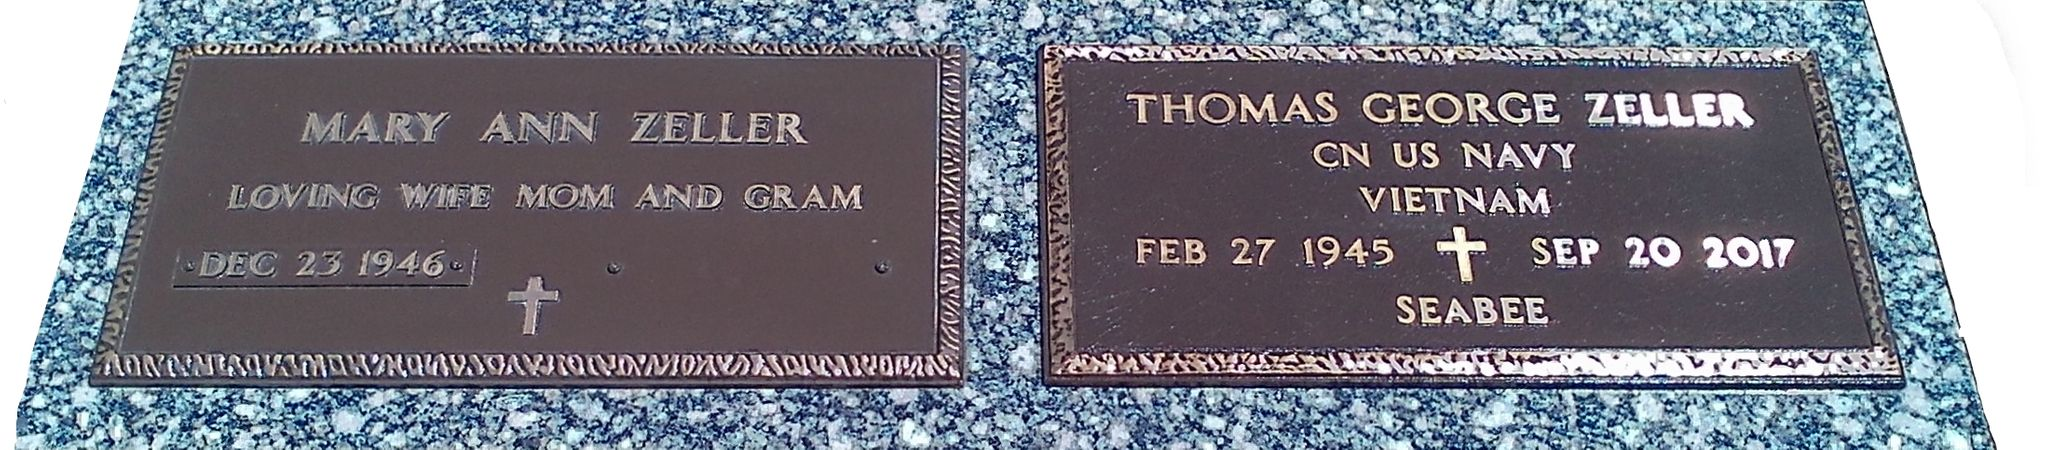 Double Flat Bronze Veteran Style Plaques on Granite Backer.